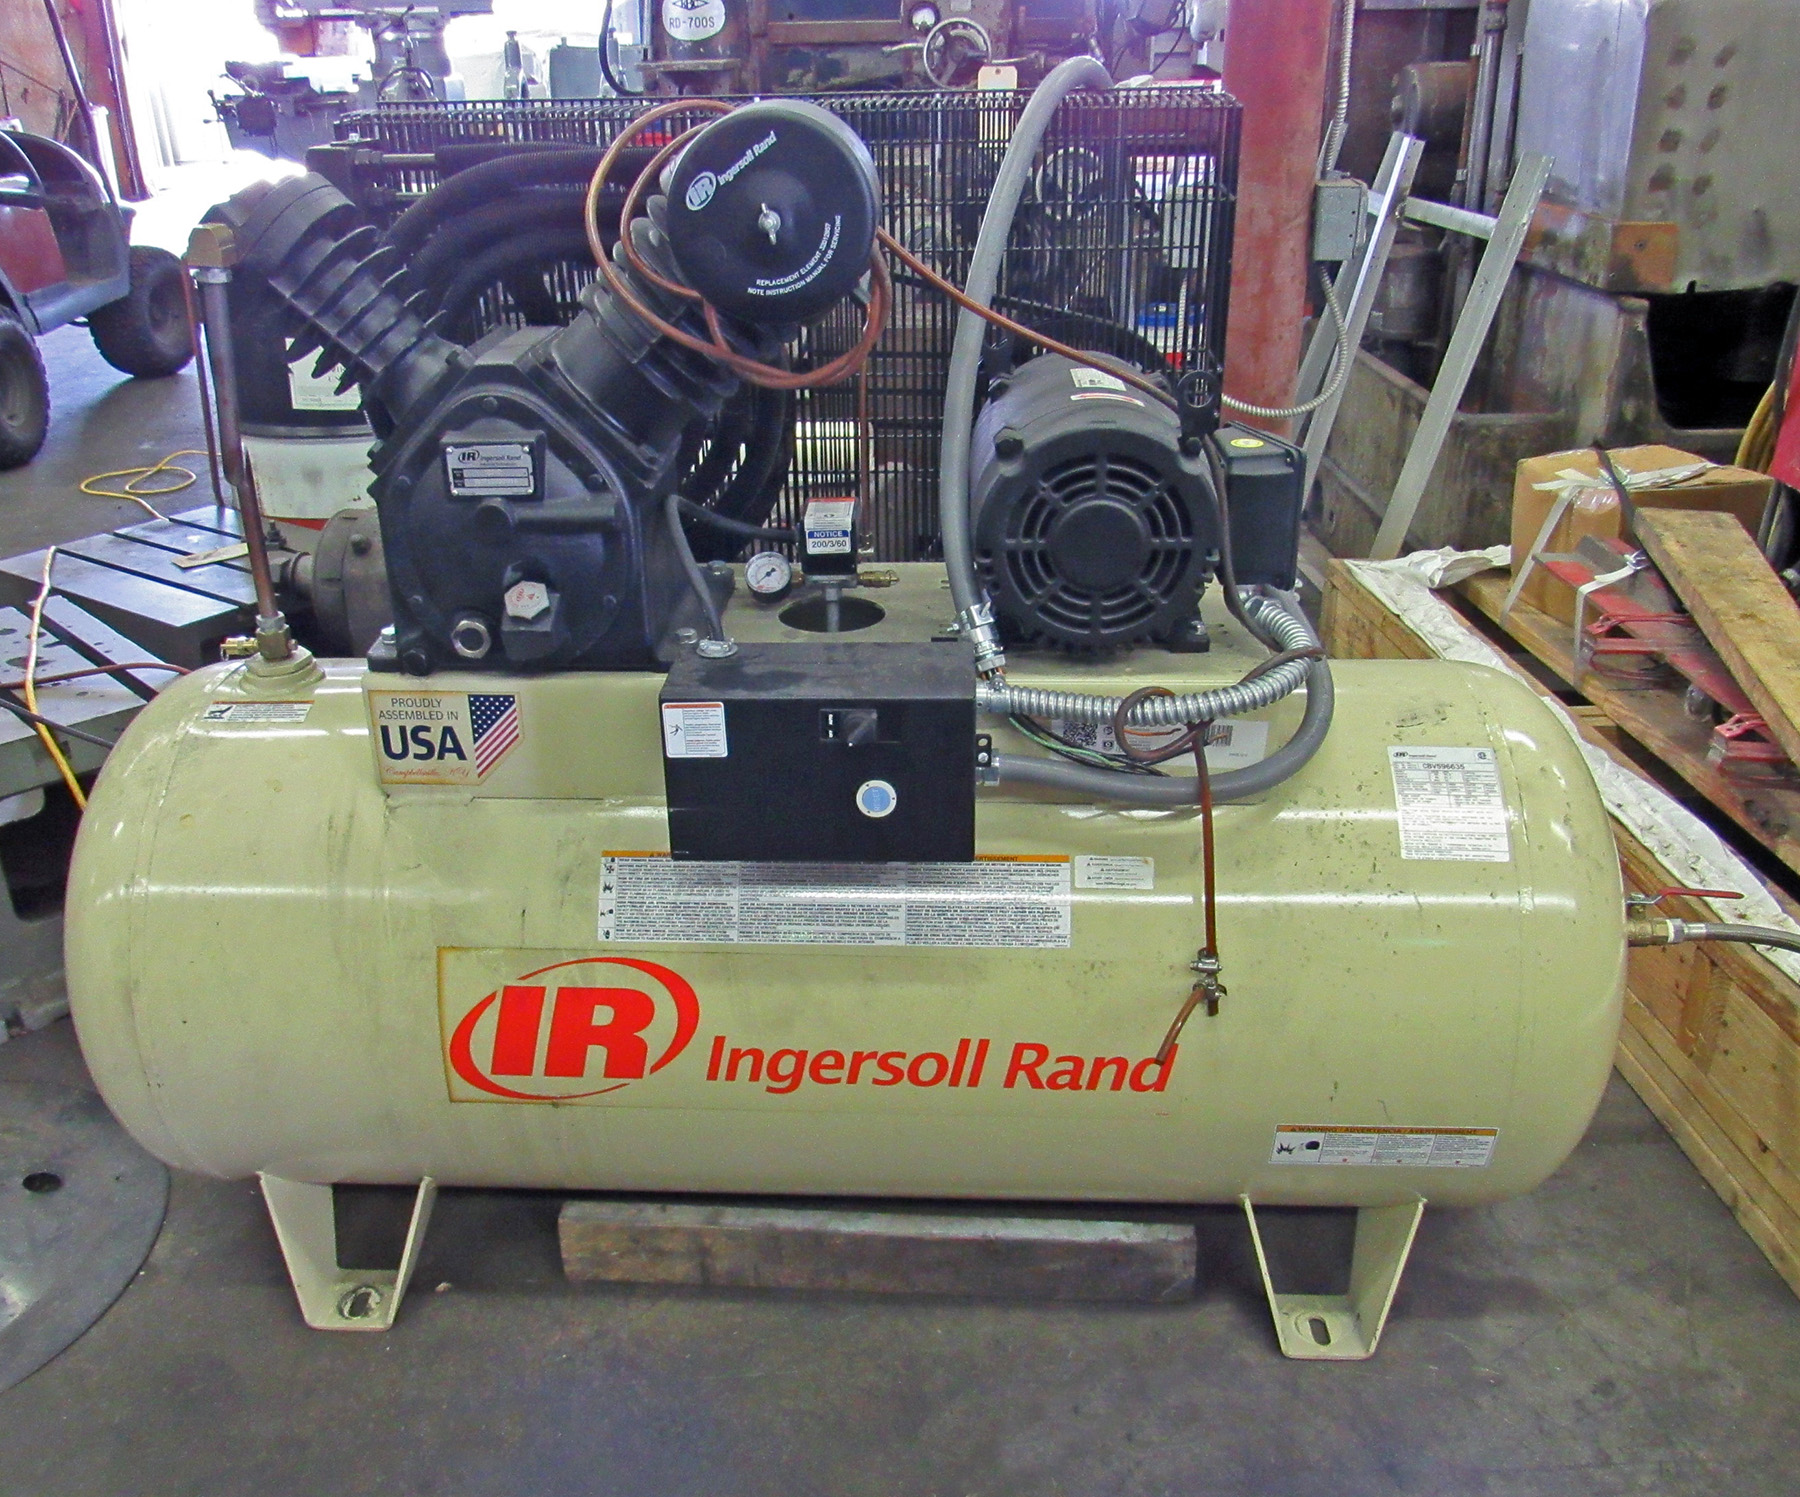 USED, INGERSOLL RAND MODEL 2545 TANK MOUNTED AIR COMPRESSOR